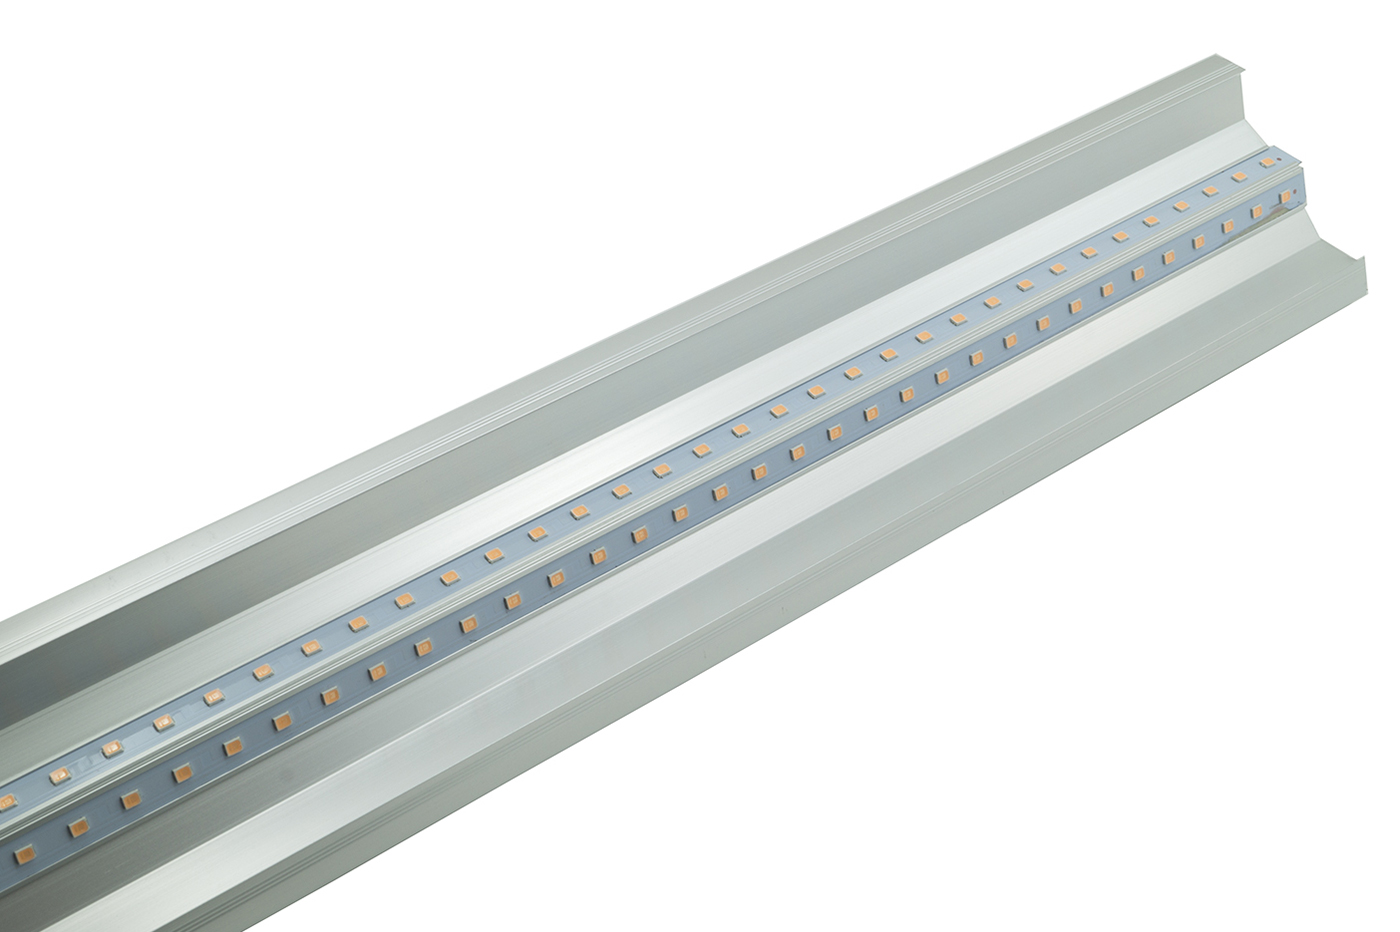 Plafoniera Led A Soffitto : Bes 22703 plafoniere beselettronica plafoniera led 45w luce